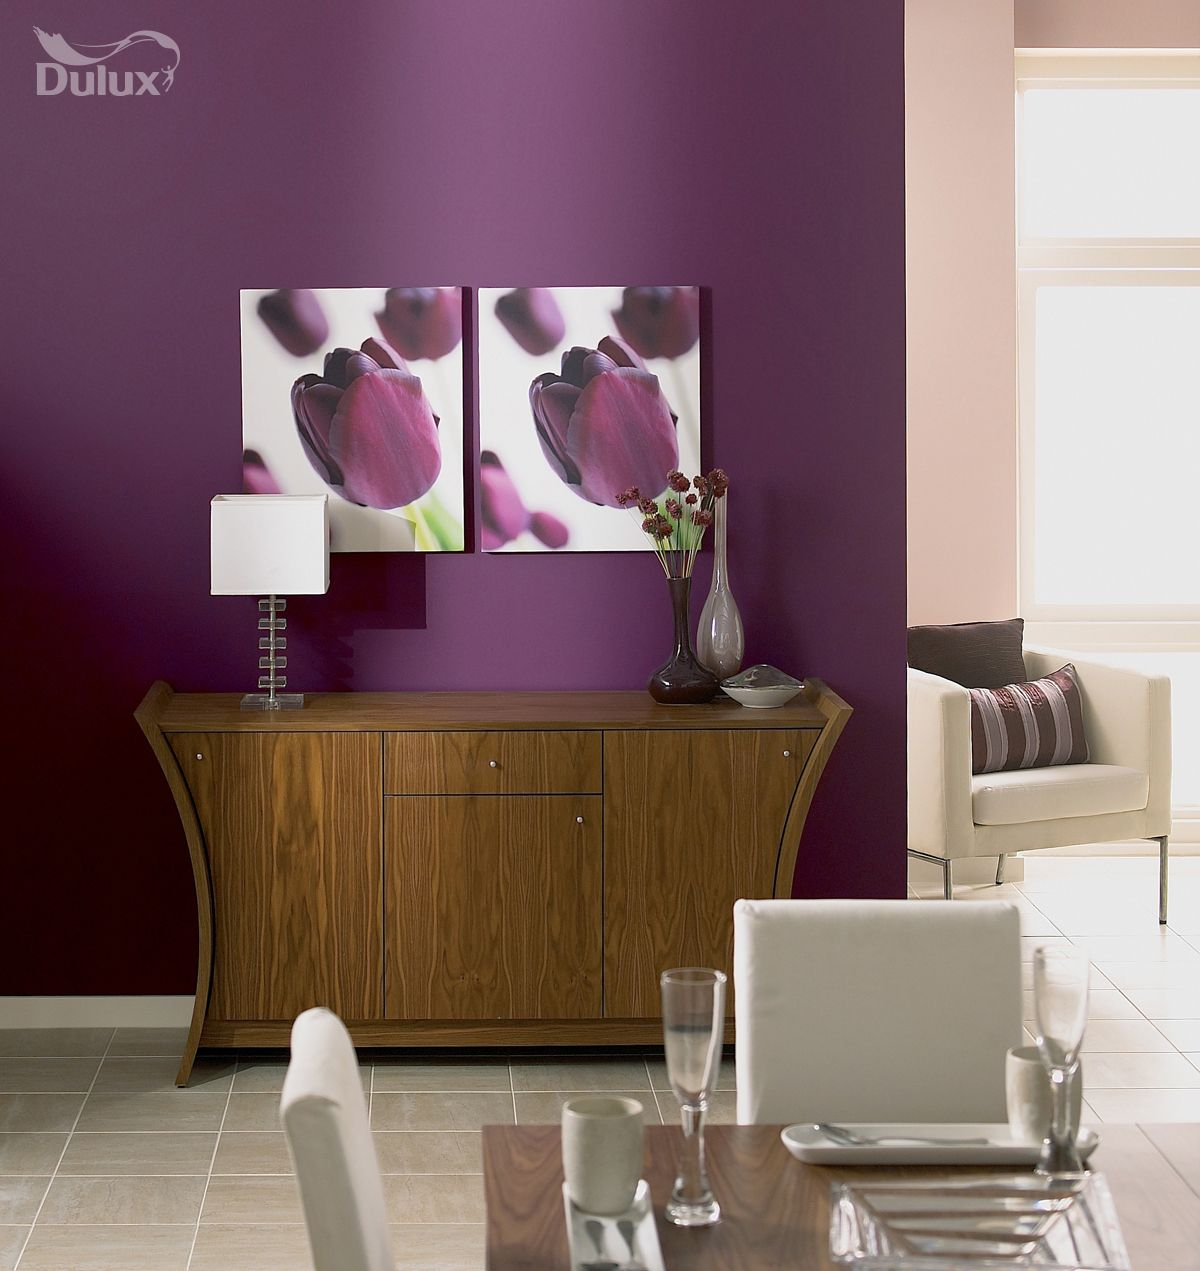 Colour Schemes Inspiration And Decoration Ideas From Dulux. Discover  Decorating Trends, Including Colours And Ideas To Transform Your Home Décor.